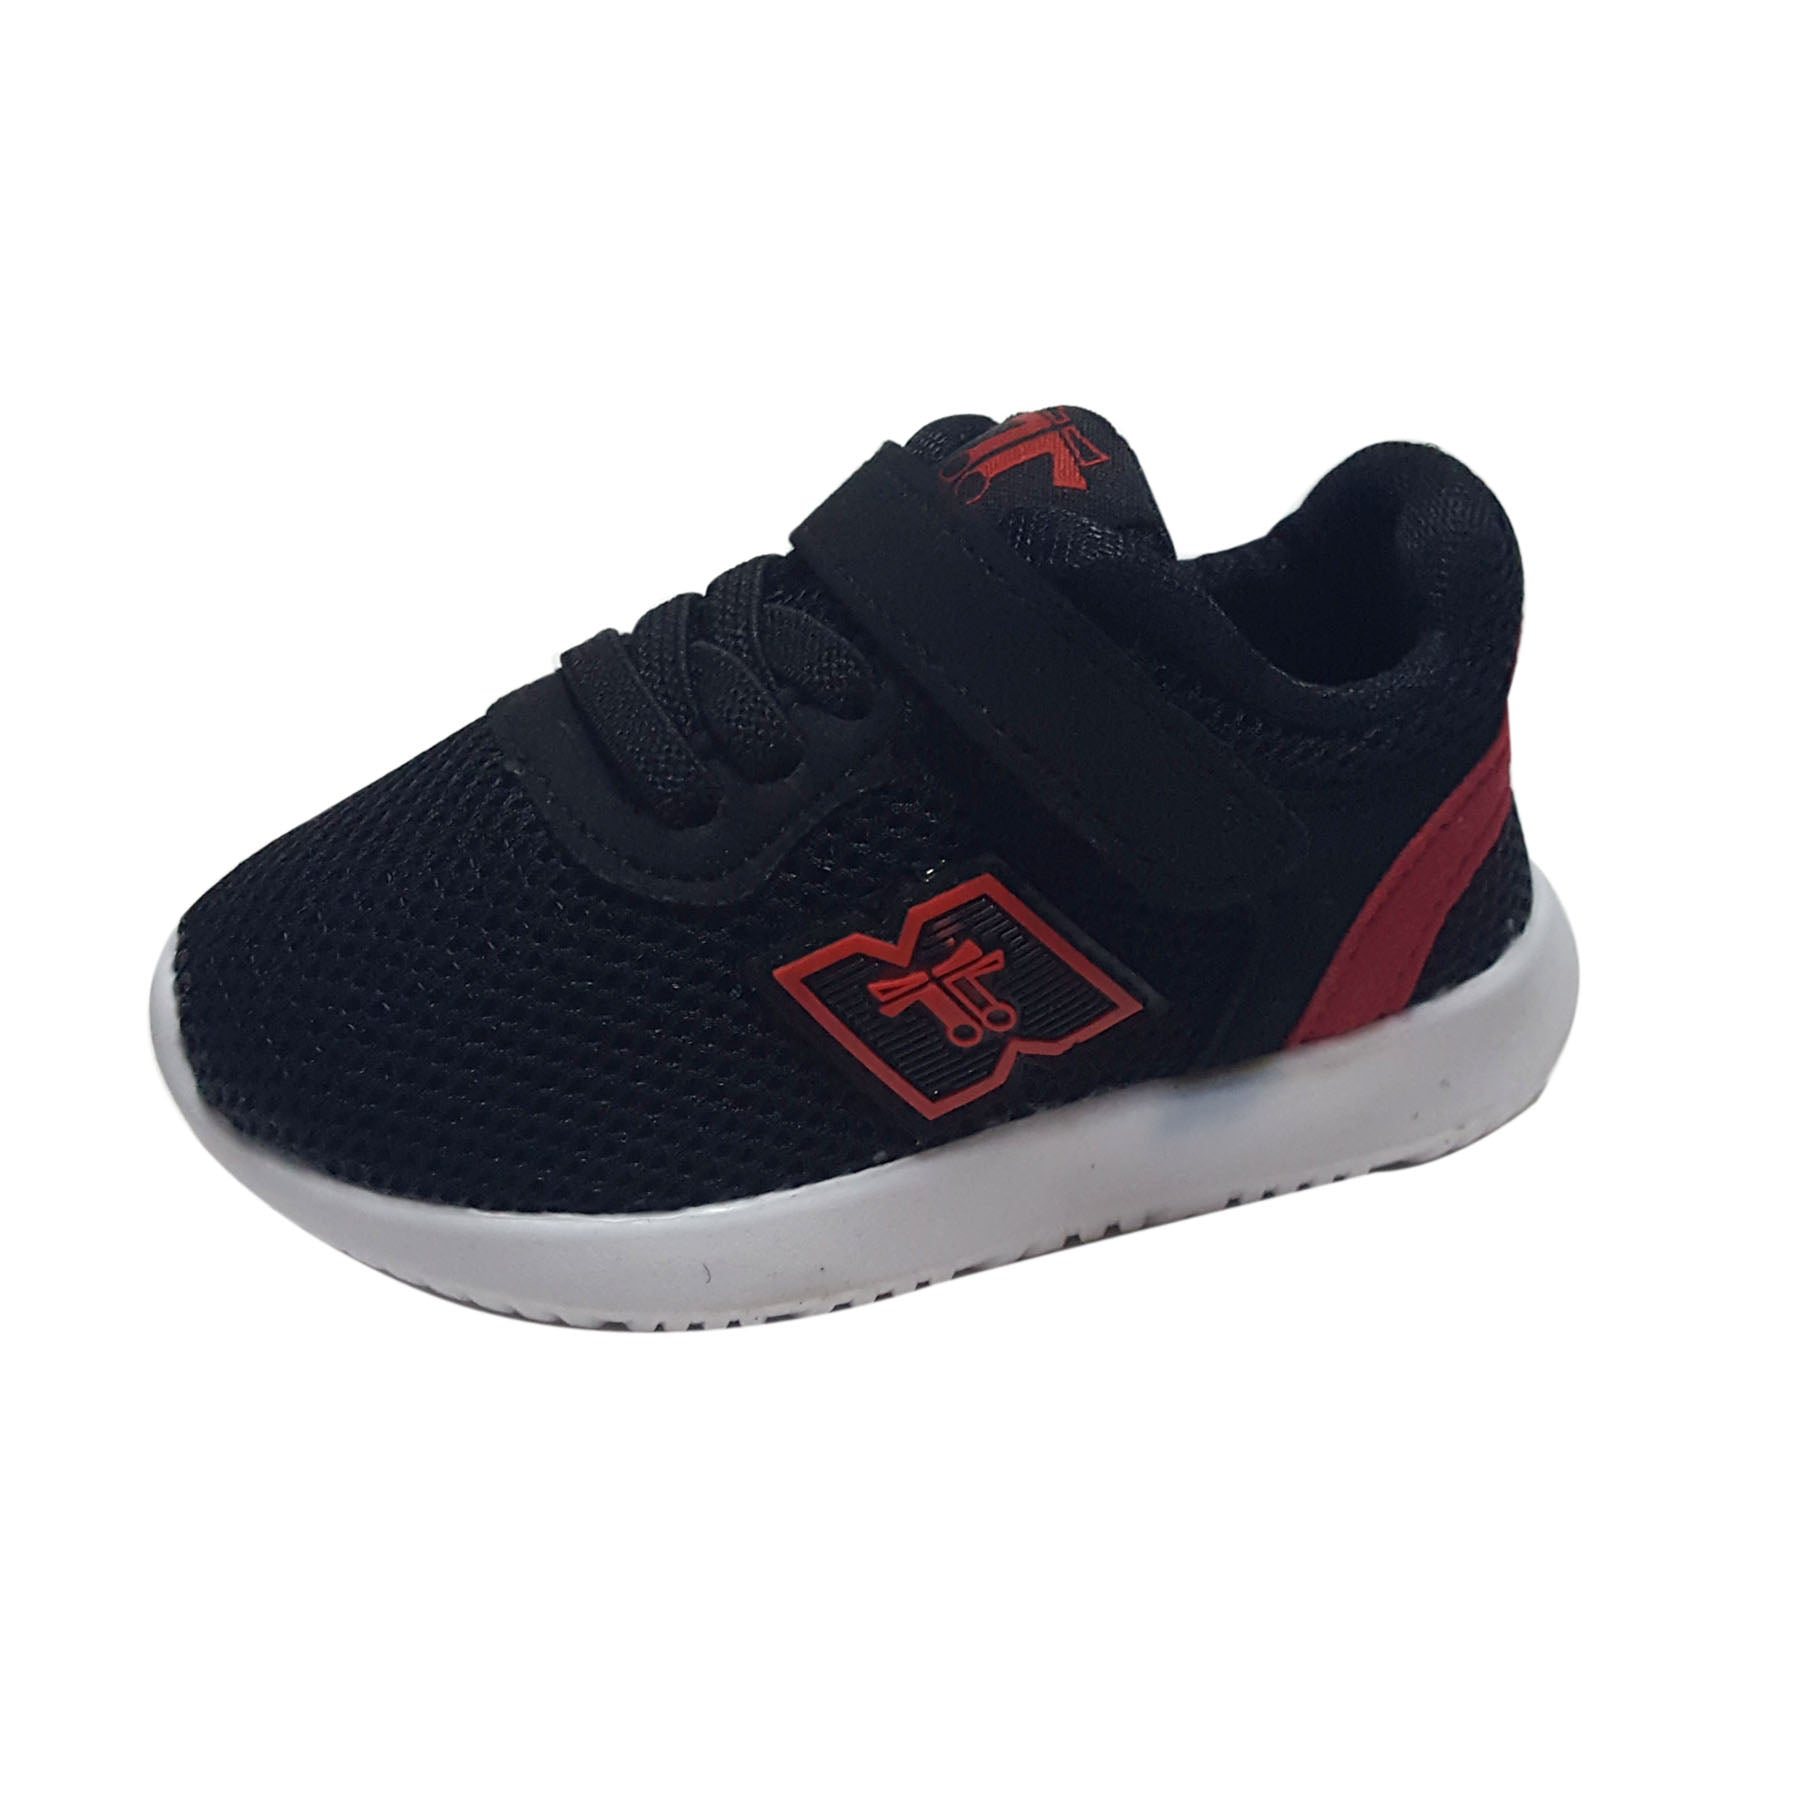 S177 RR Sports Shoes - Travis Black/Red Special Offer